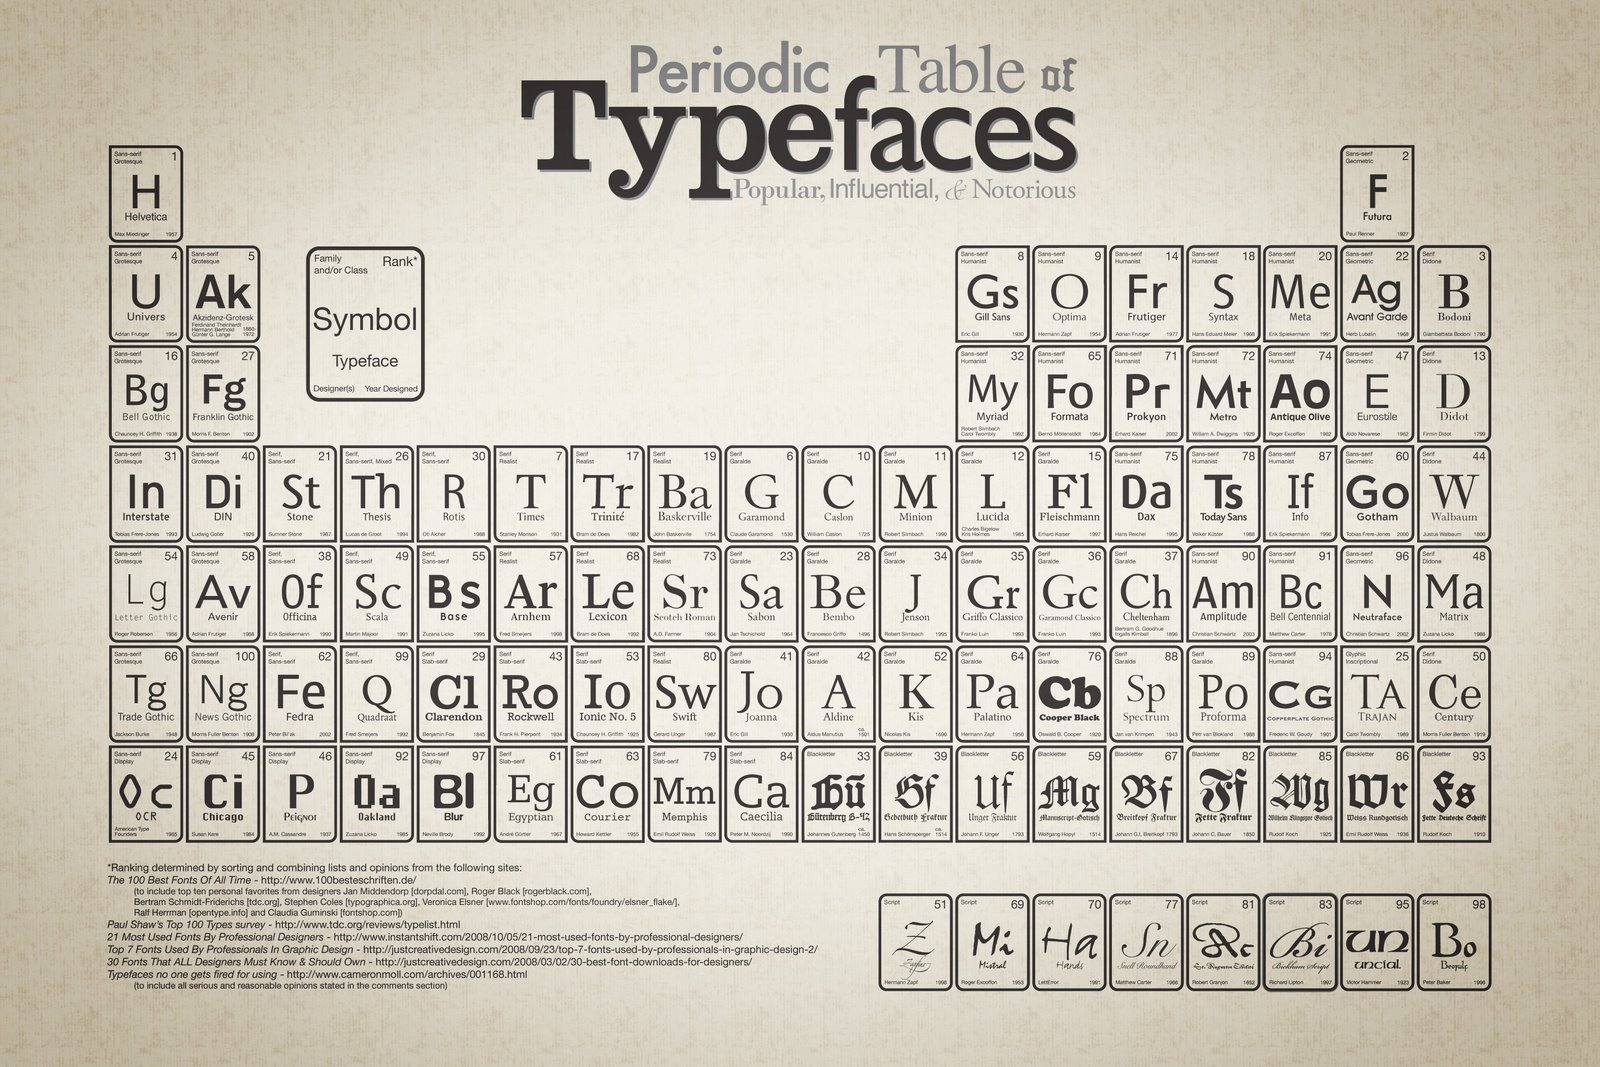 Cop theory to practiceperiodic table of typefaces a periodic table of typefaces this shows the top ranked fonts aswell as showing the font it gives information on who the designer is gamestrikefo Image collections